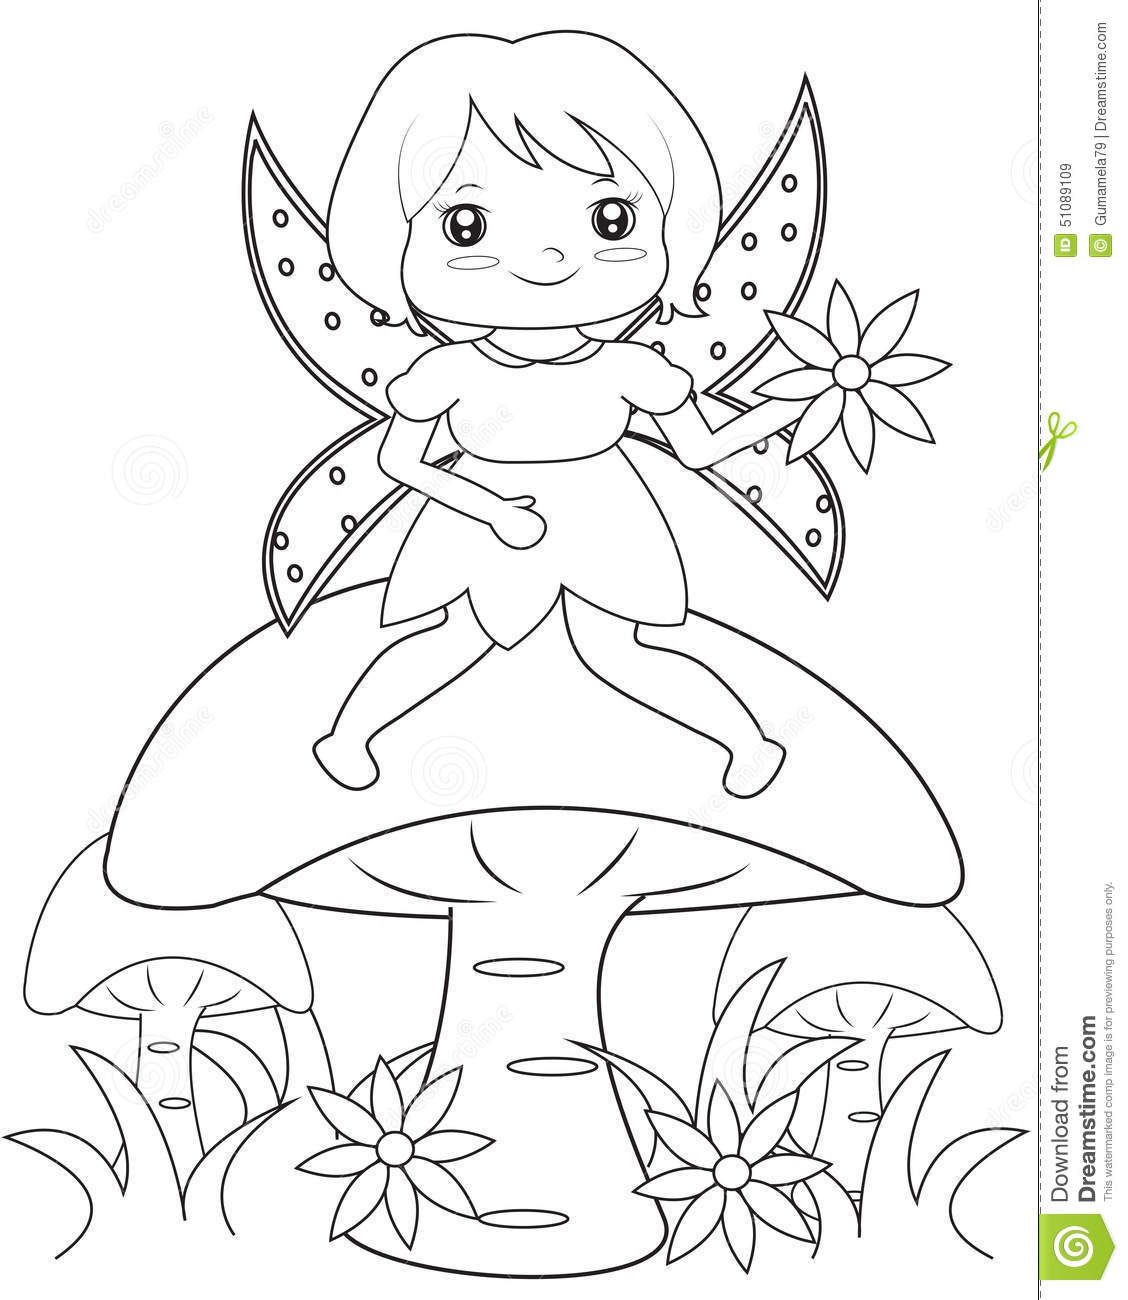 Fairy on a mushroom coloring page, useful as coloring book for kids.